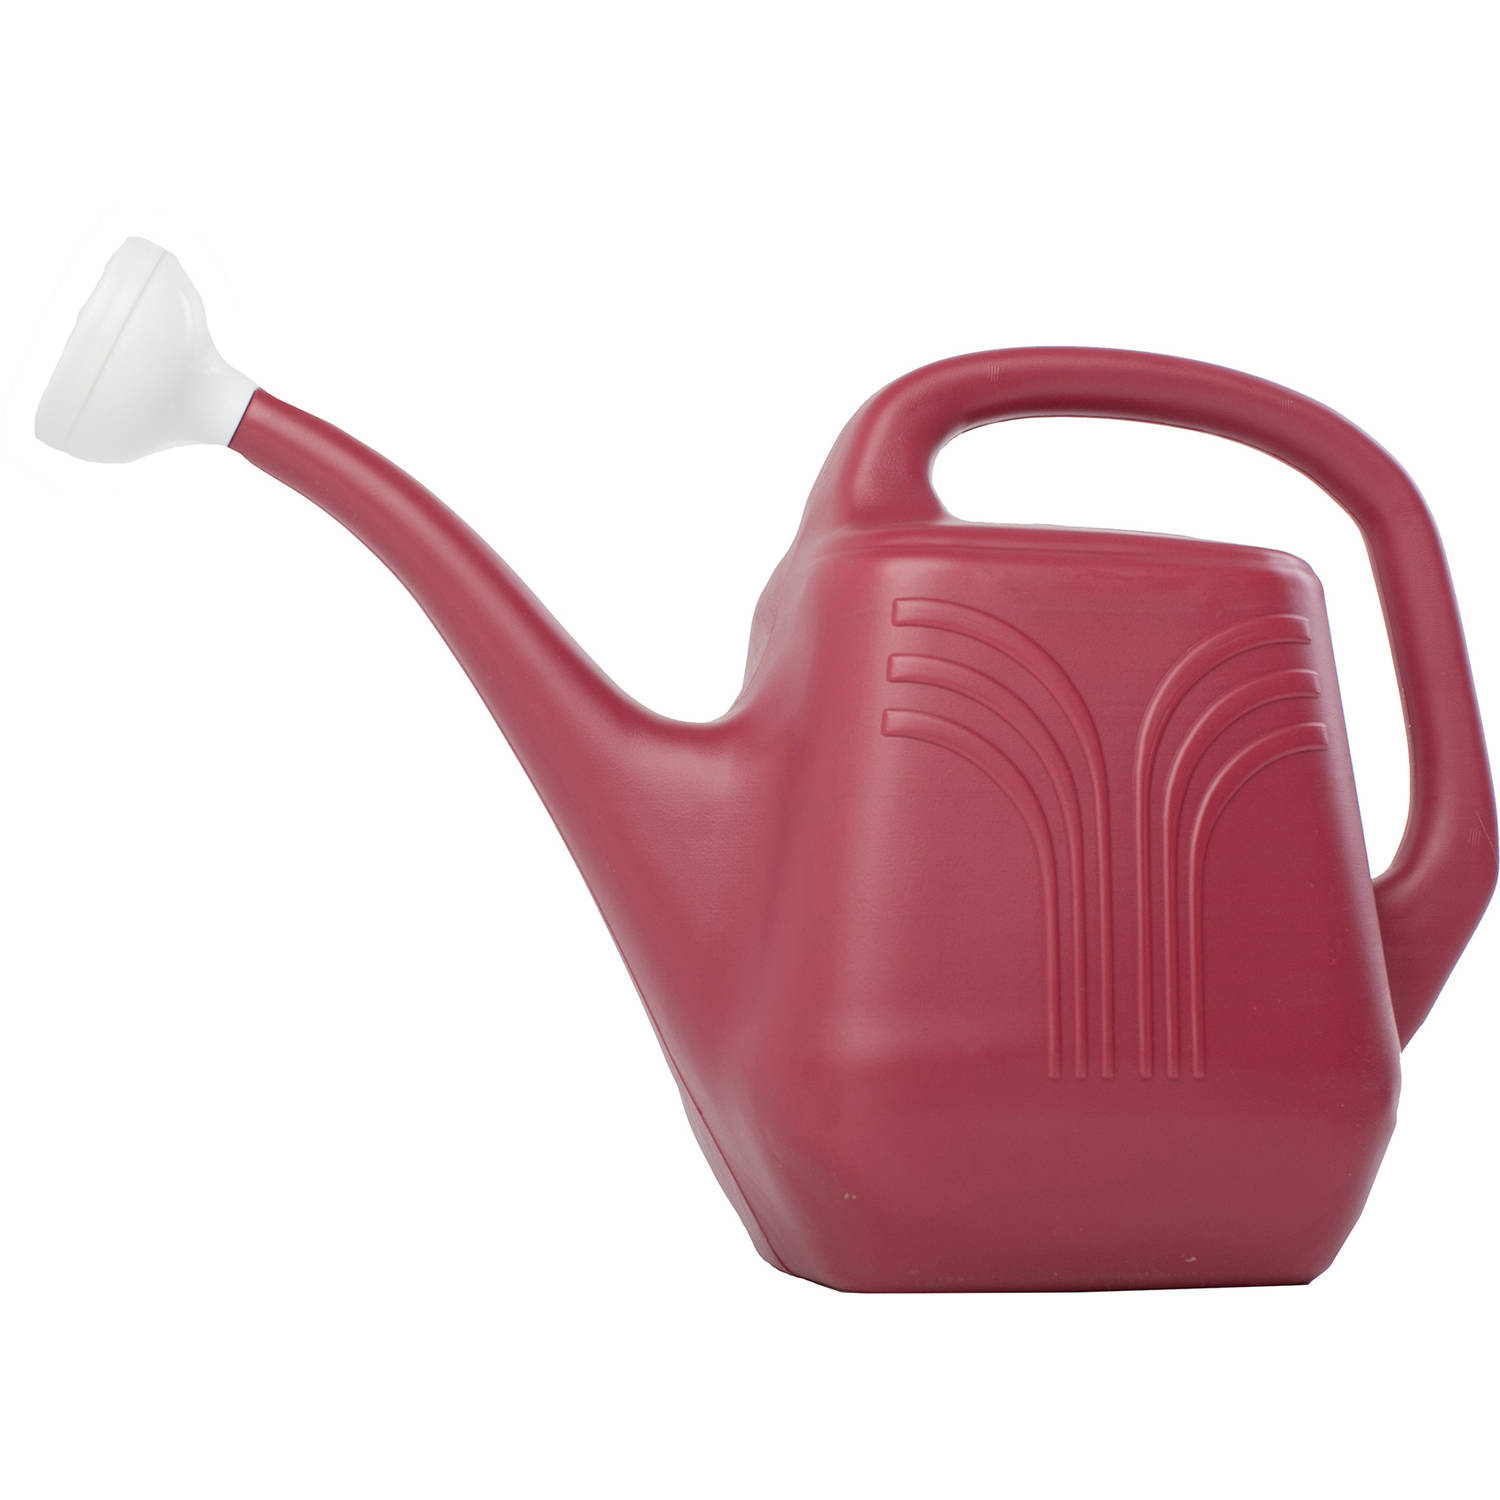 Bloem JW82-12 2 Gallon Red Watering Can by Bloem